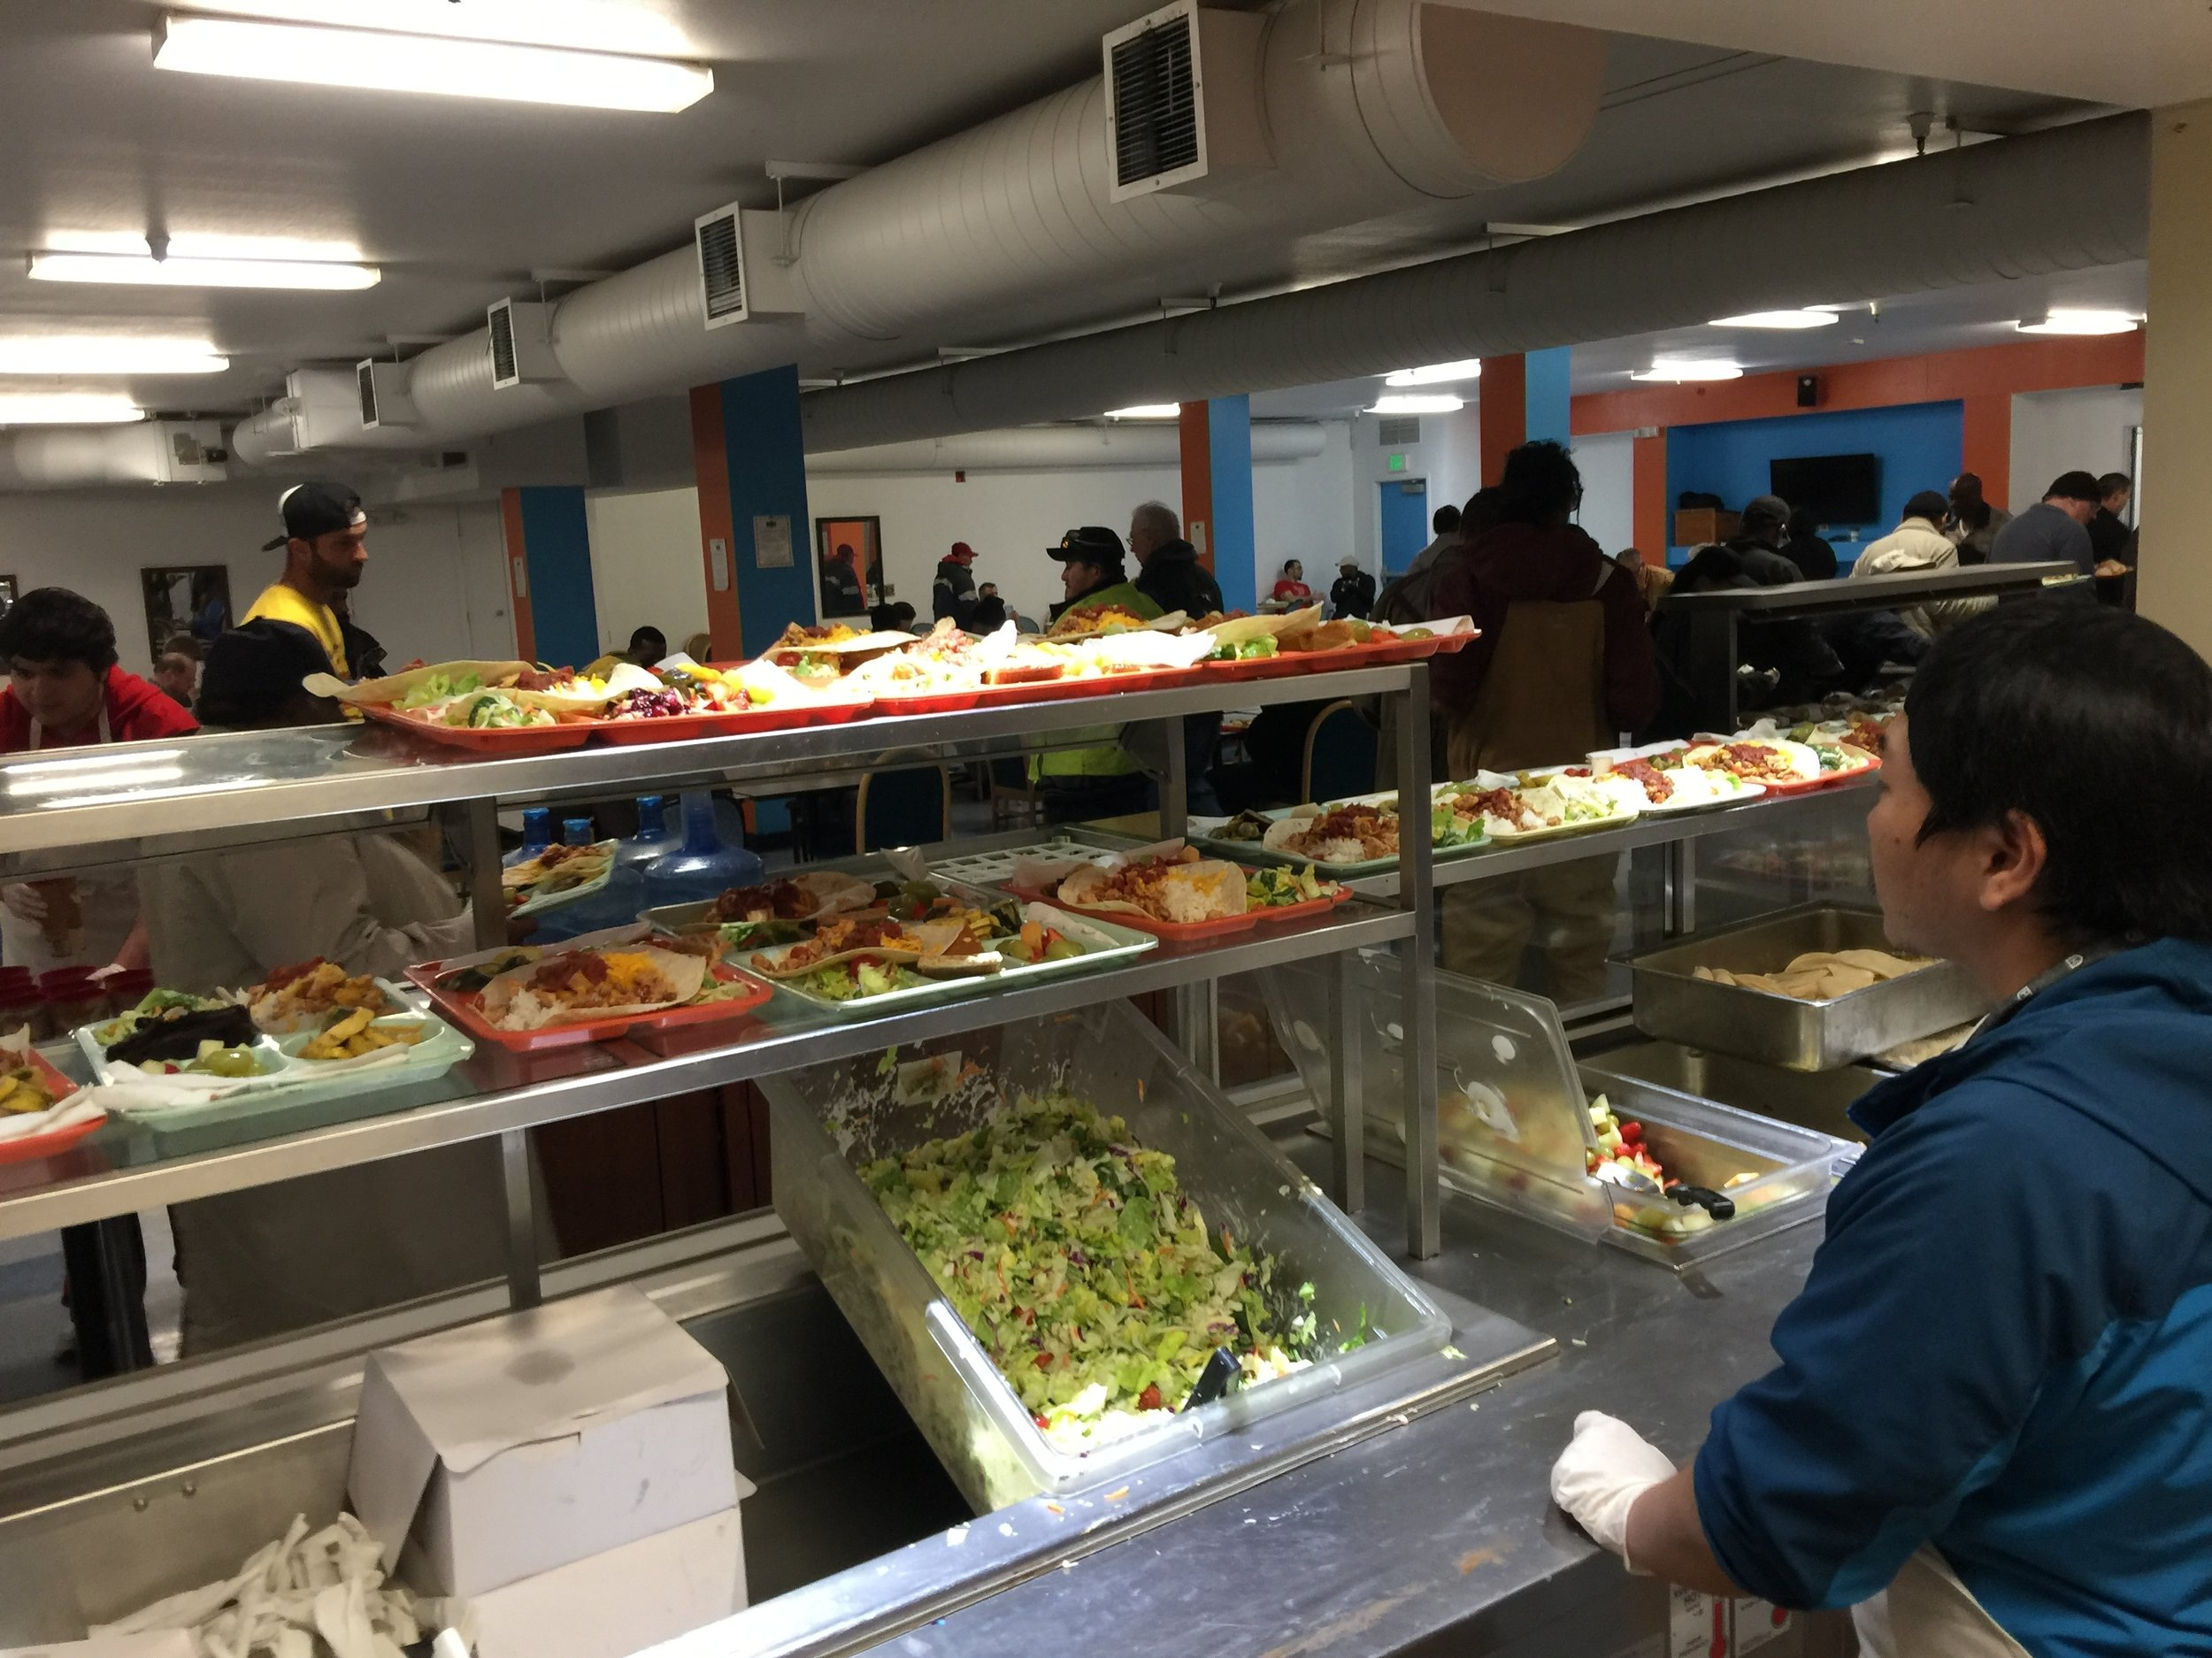 SERVING THE HOMELESS AT CITY TEAM MINISTRIES